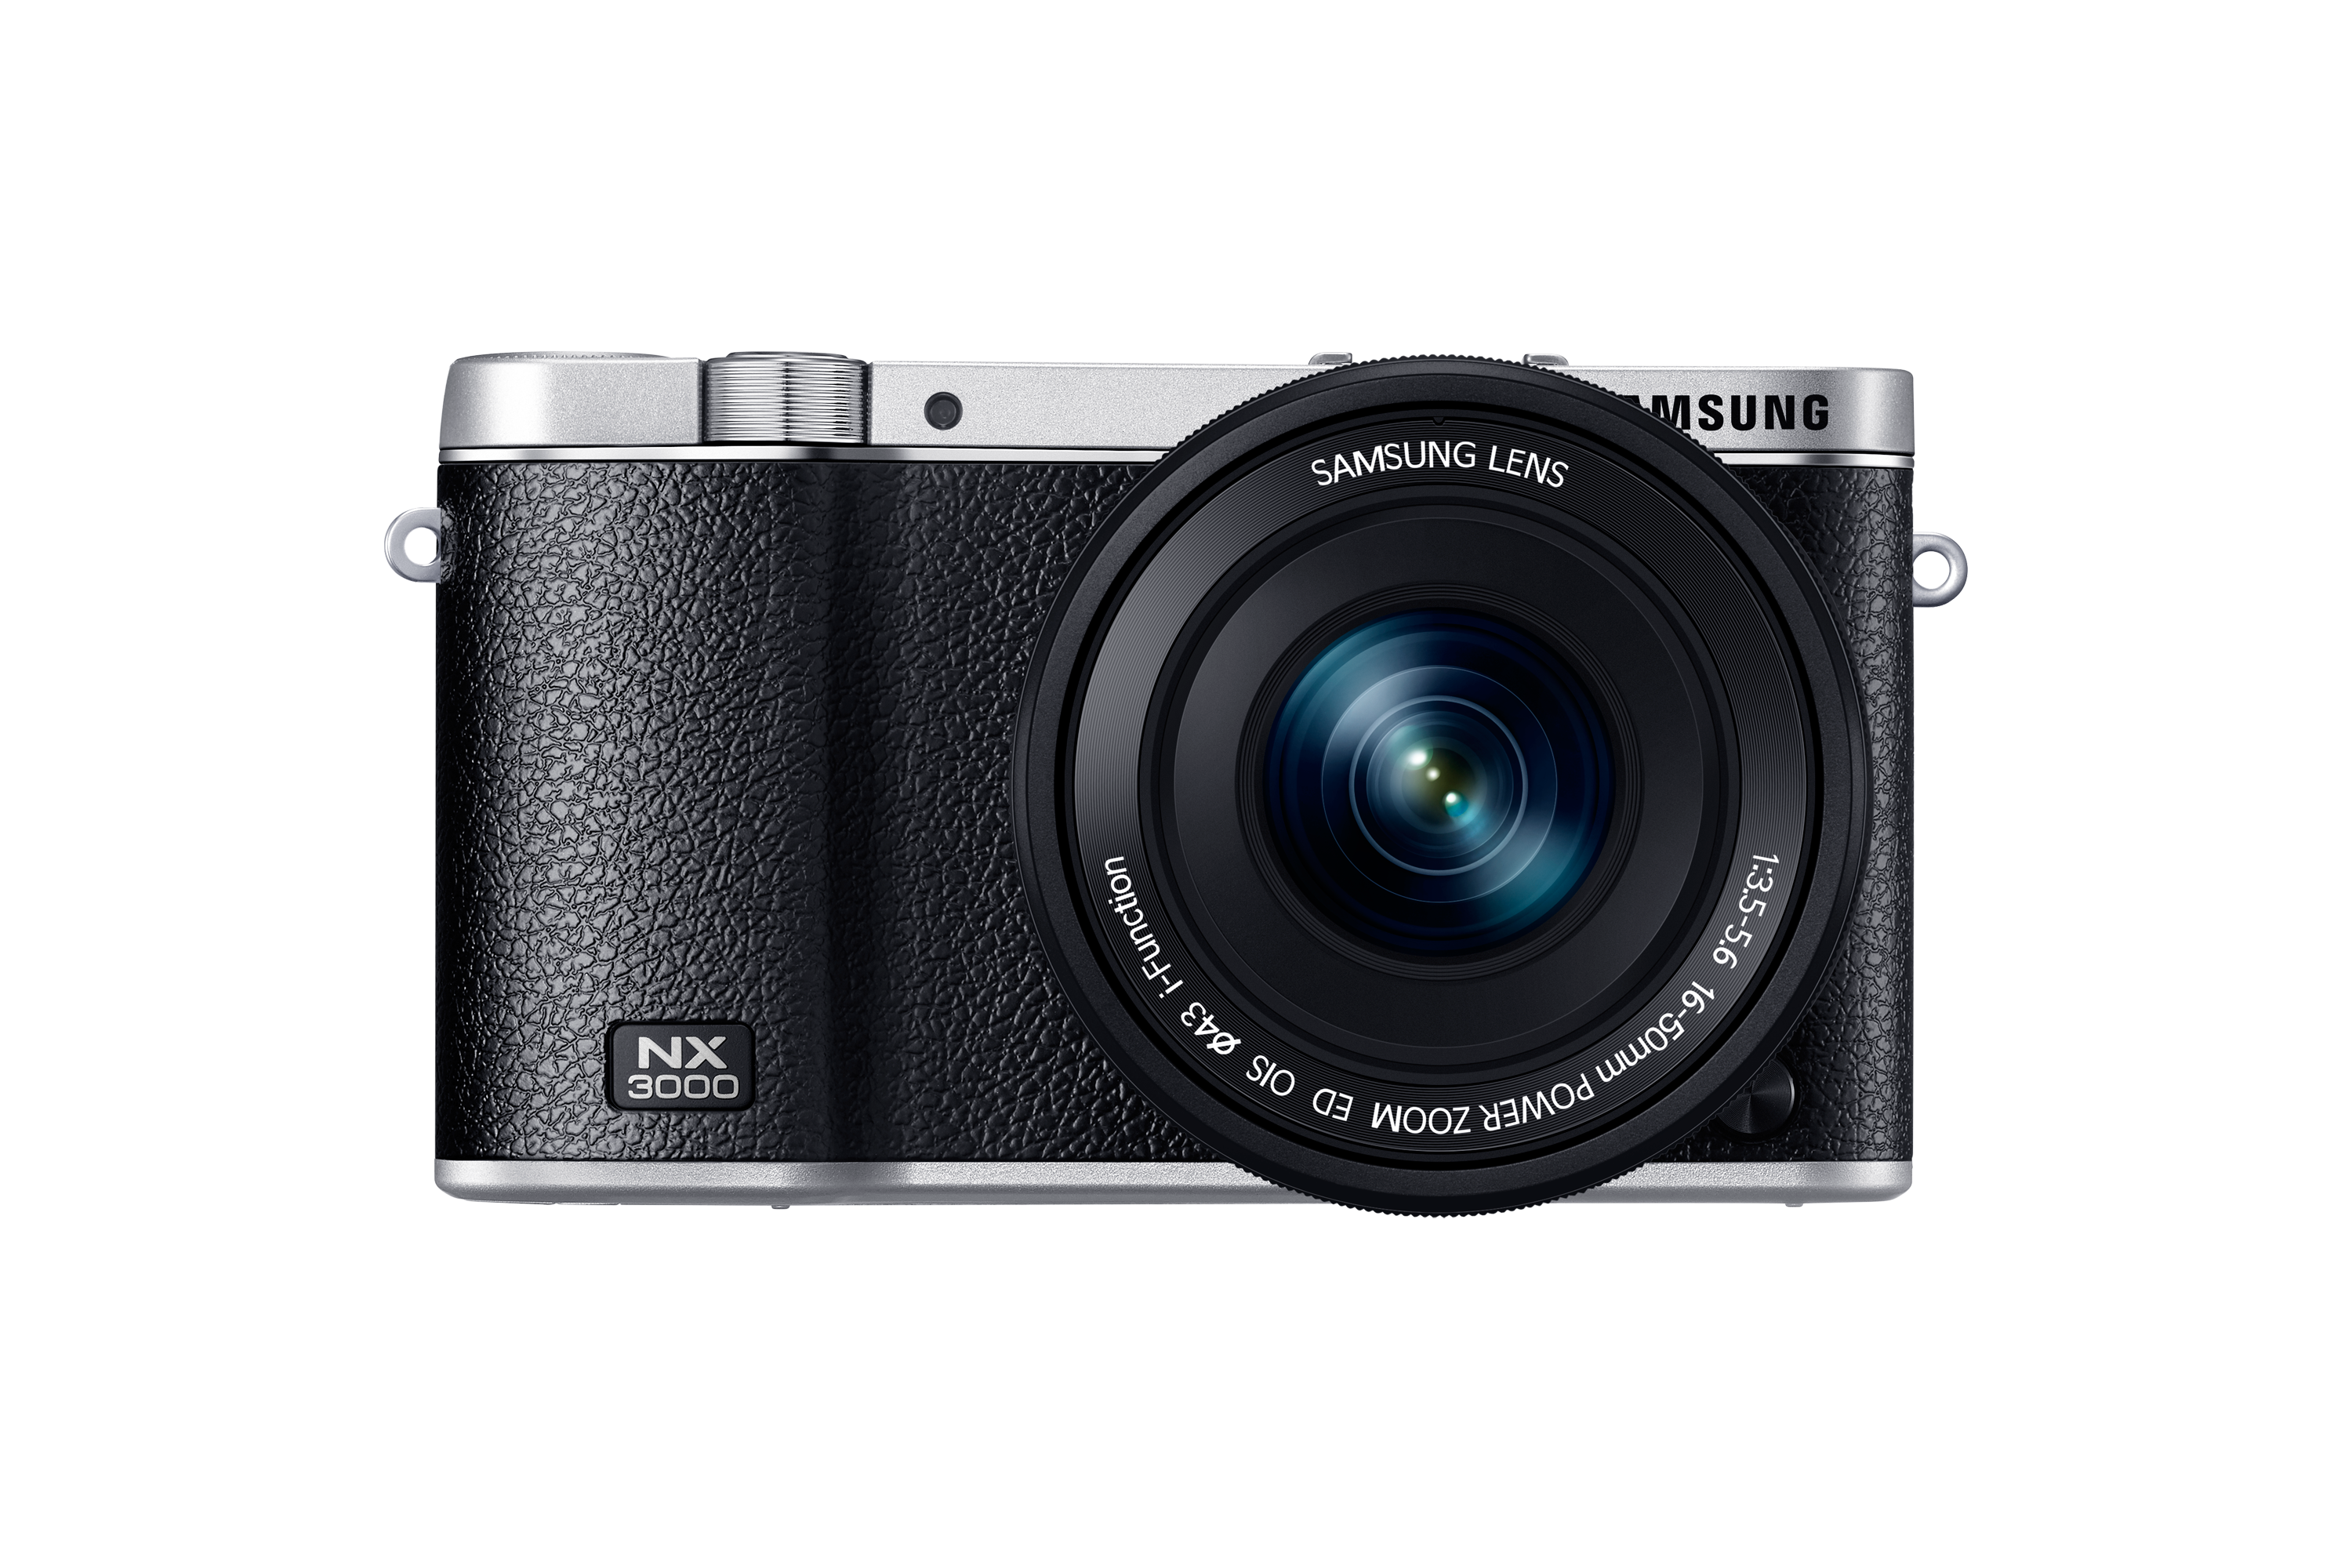 NX3000 (16-50 mm Power Zoom, Flash)